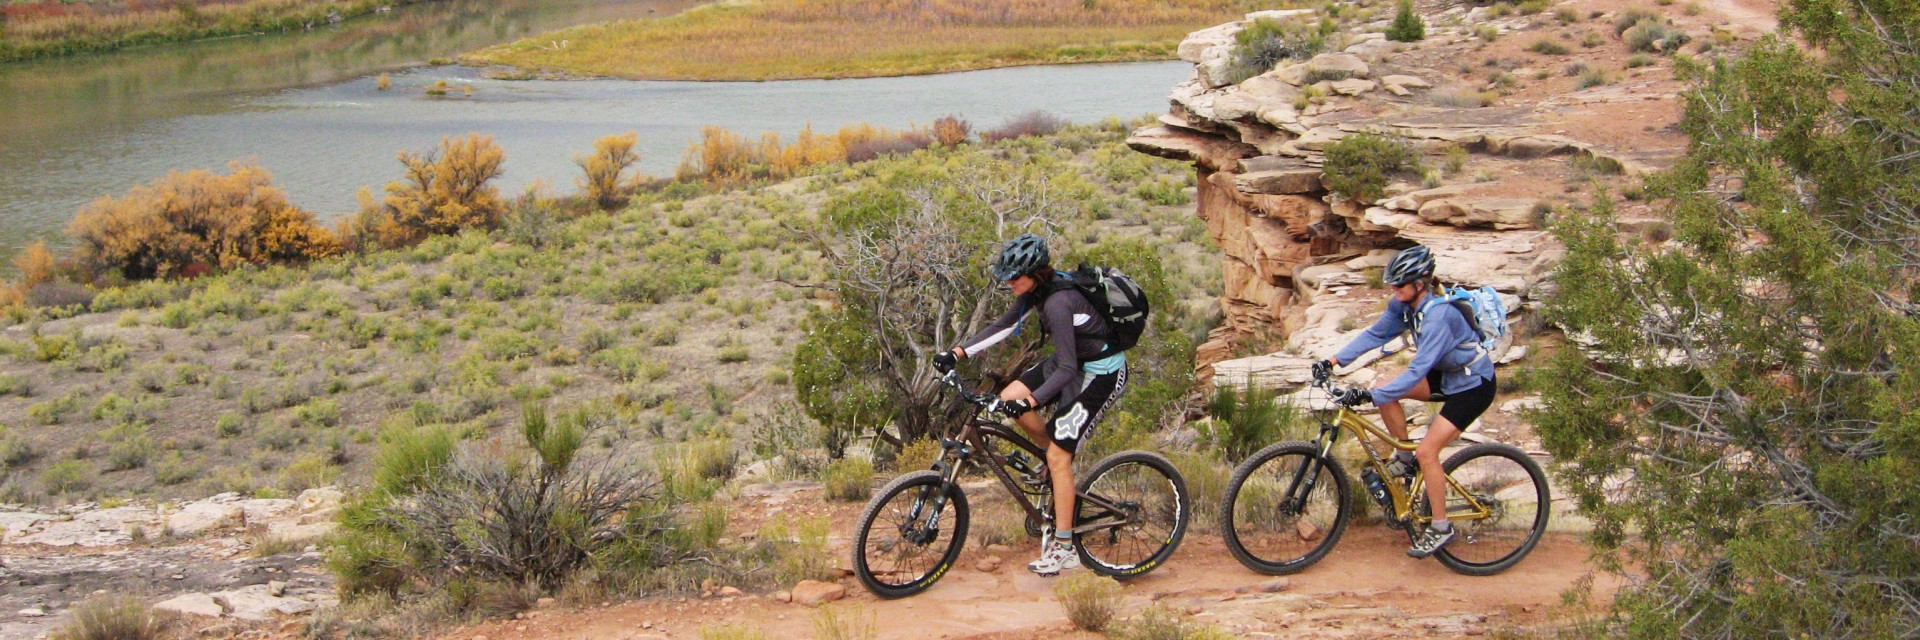 Singletrack section of the Kokopelli Trail nears the Colorado River, Fruita CO